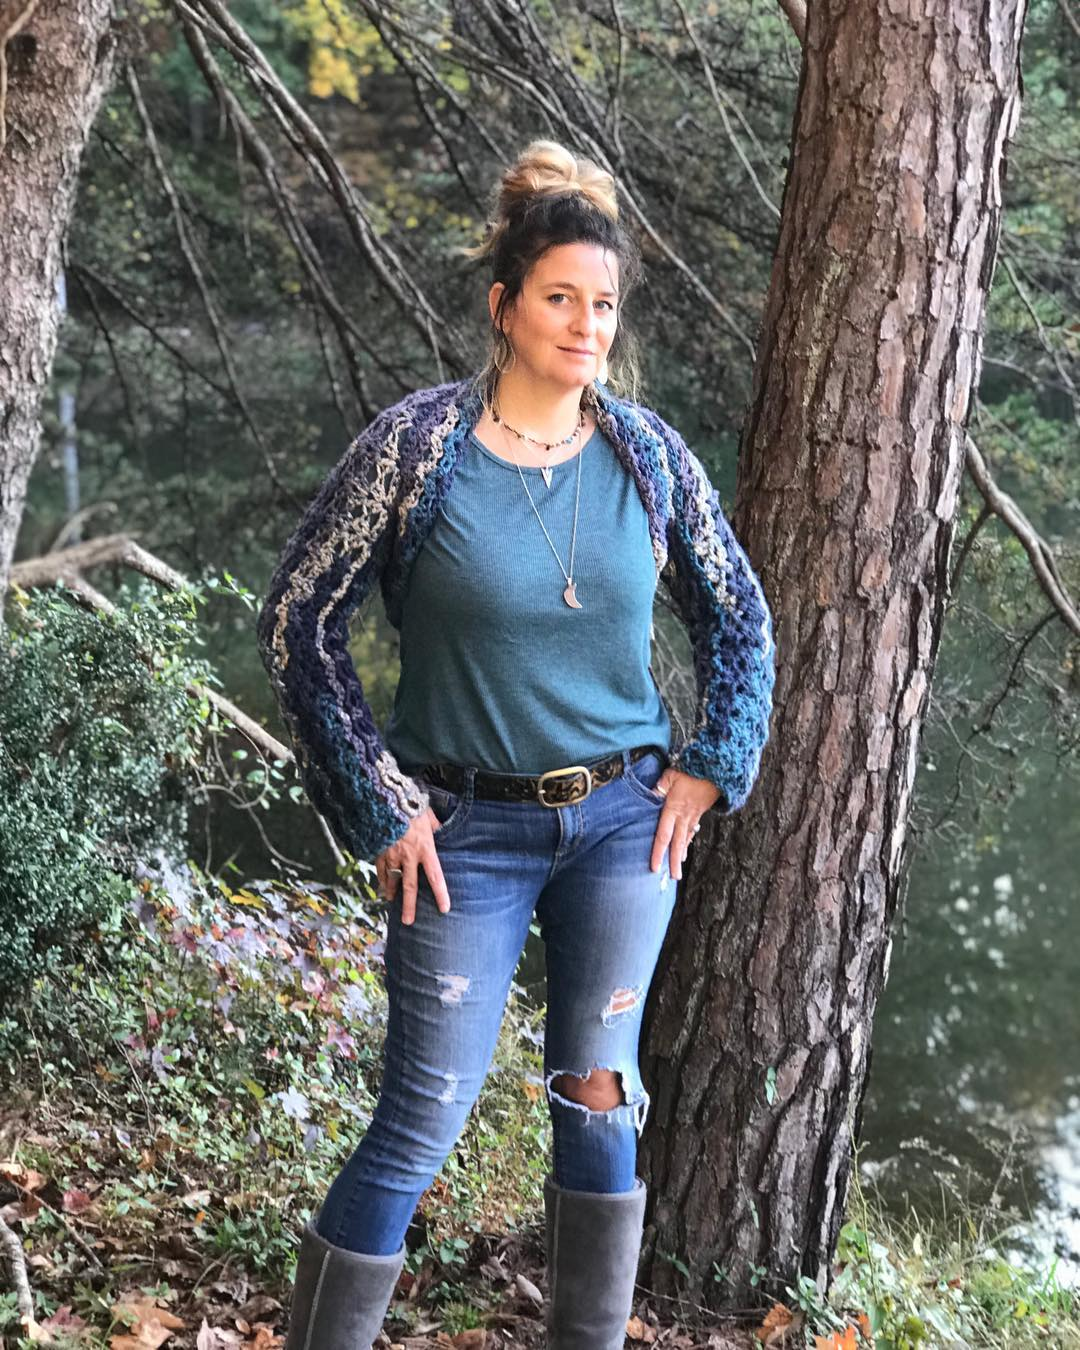 Fancy Crochet Shrug With Round Neck Top And Blue Jeans